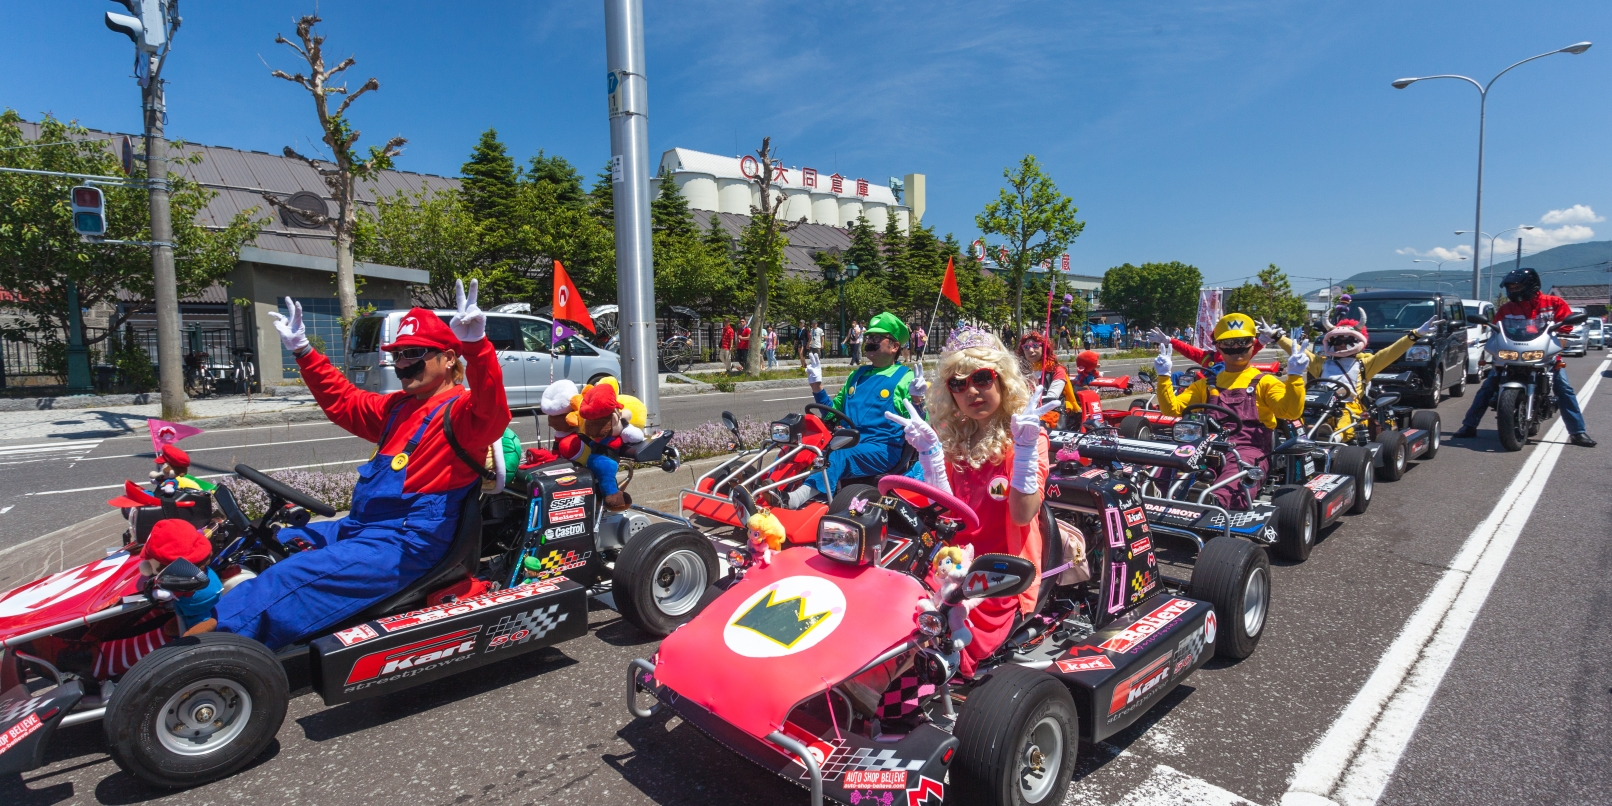 Japan's getting a $350 million Mario theme park attraction